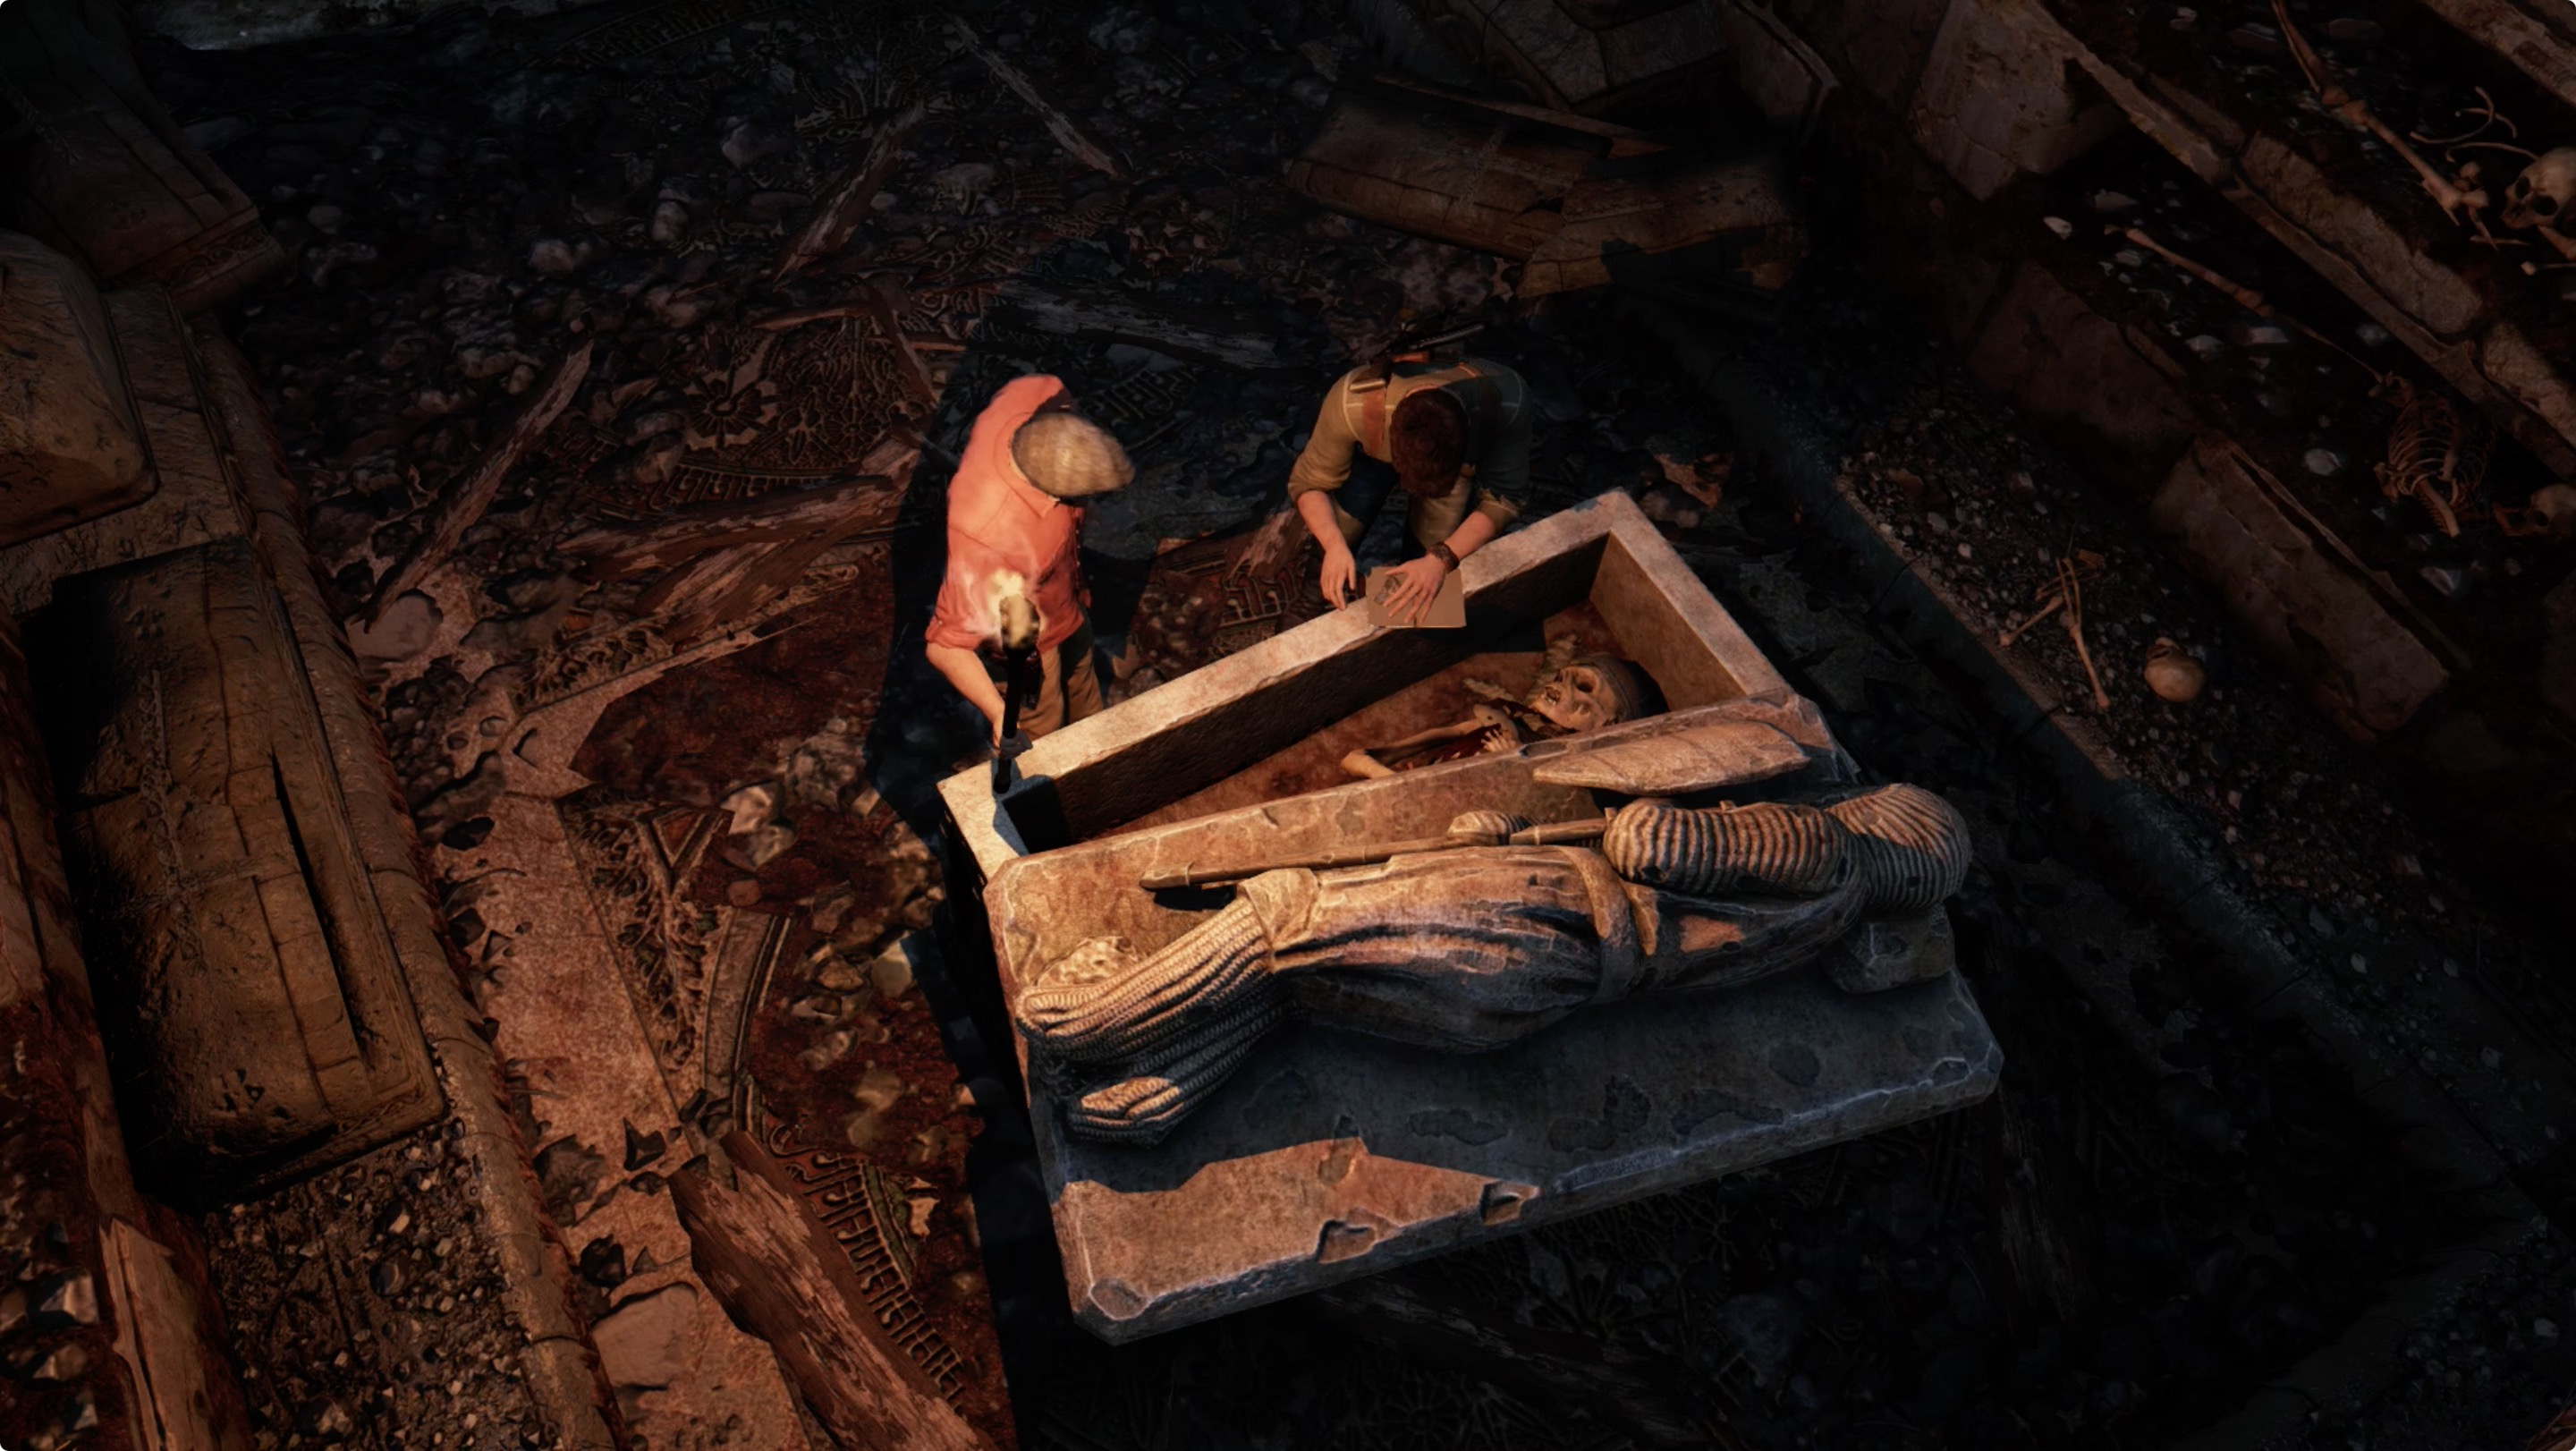 Uncharted 3: Drake's Deception 'The Chateau' treasure locations guide